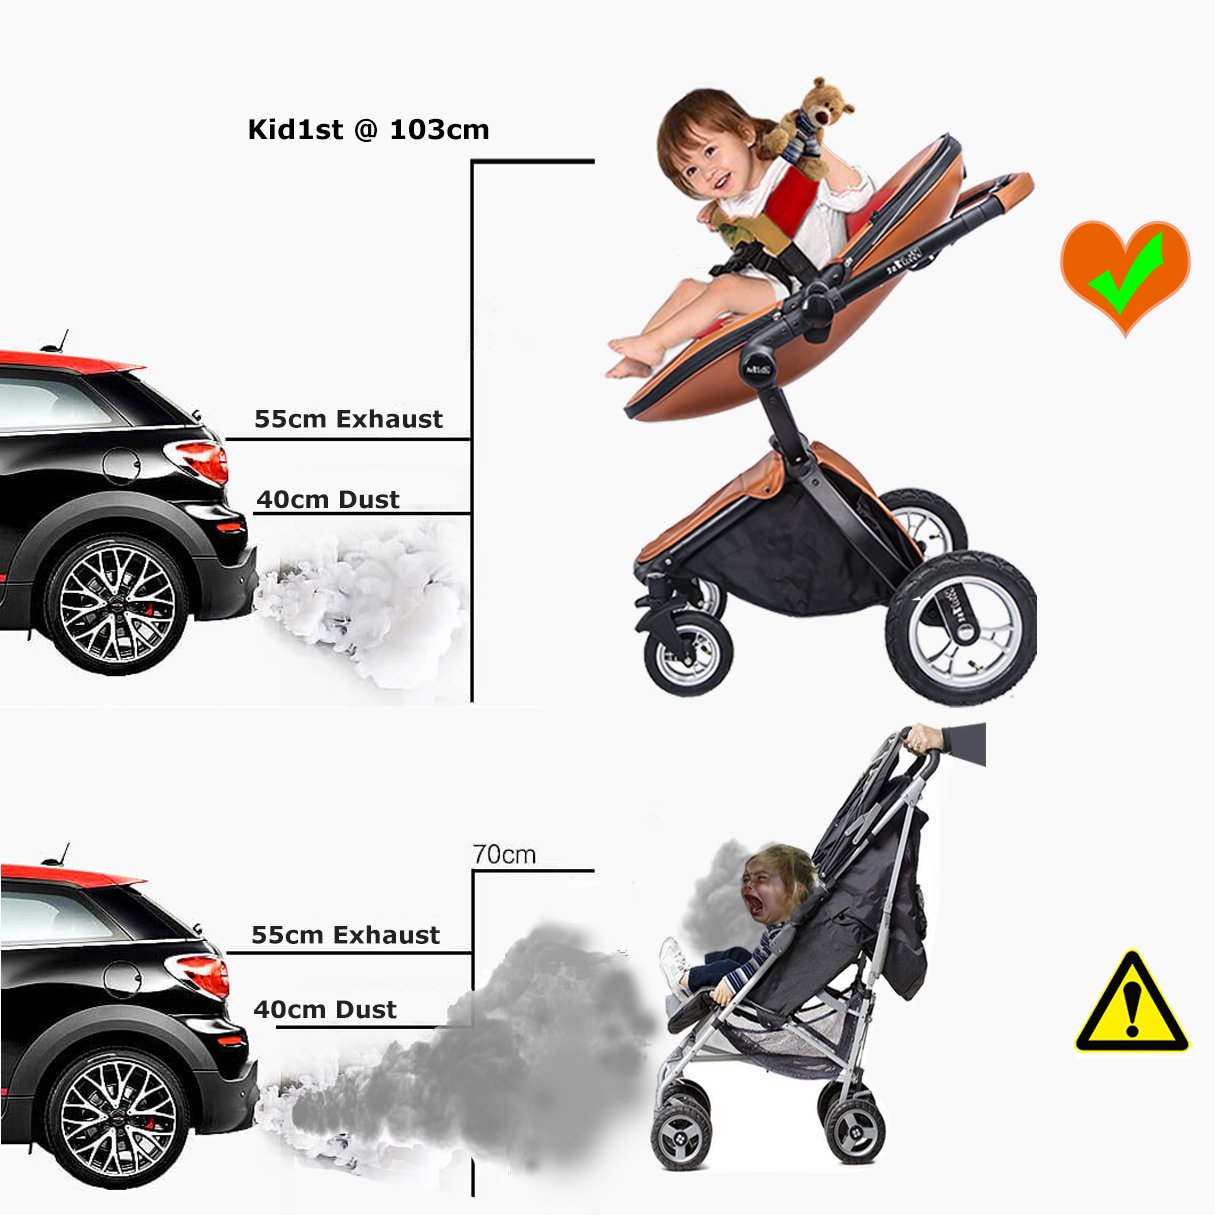 KID1st elegant all-in-1 high landscape All-Terrain Egg Shell infant Baby Stroller Travel System toddler pushchair  baby pram with Carriage Bassinet Combo for HOT MOM (Brown)  by Kid1st (Image #6)